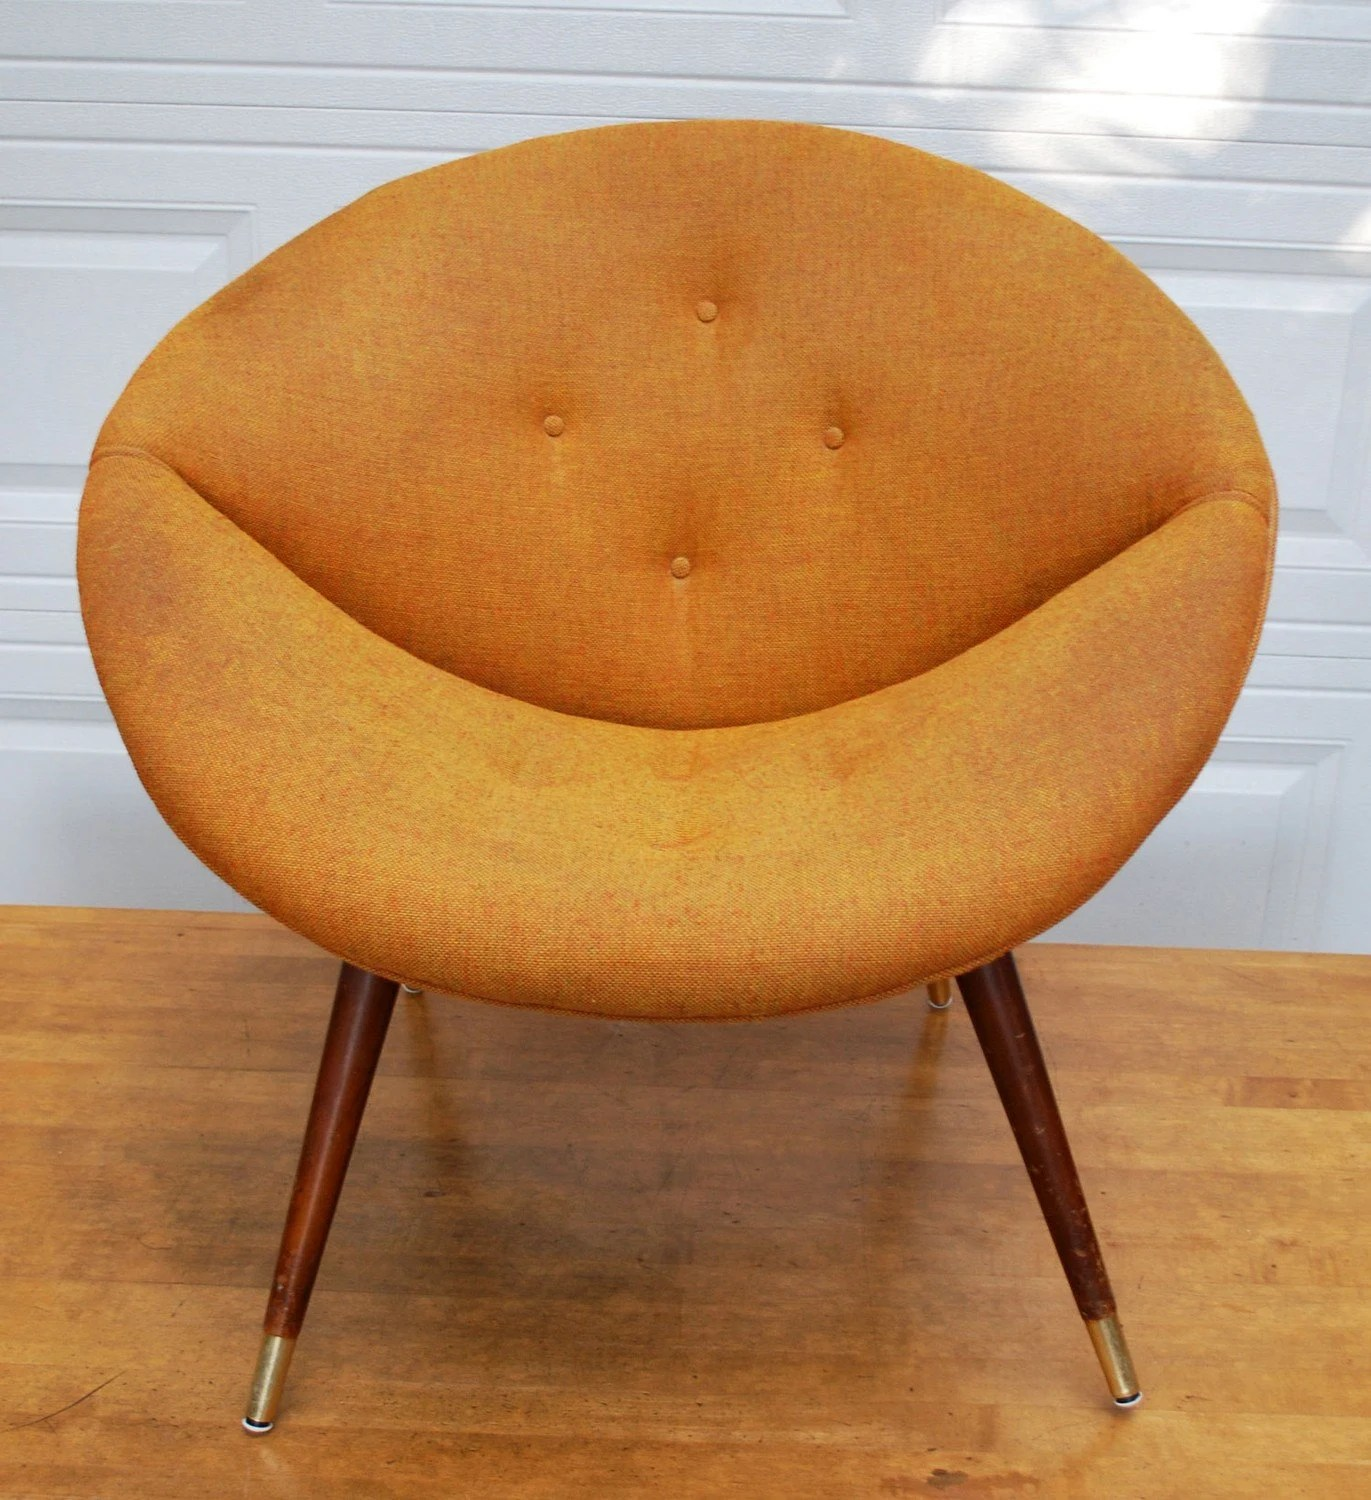 papasan chair cover etsy kitchen table 2 chairs and bench mid century orange saucer